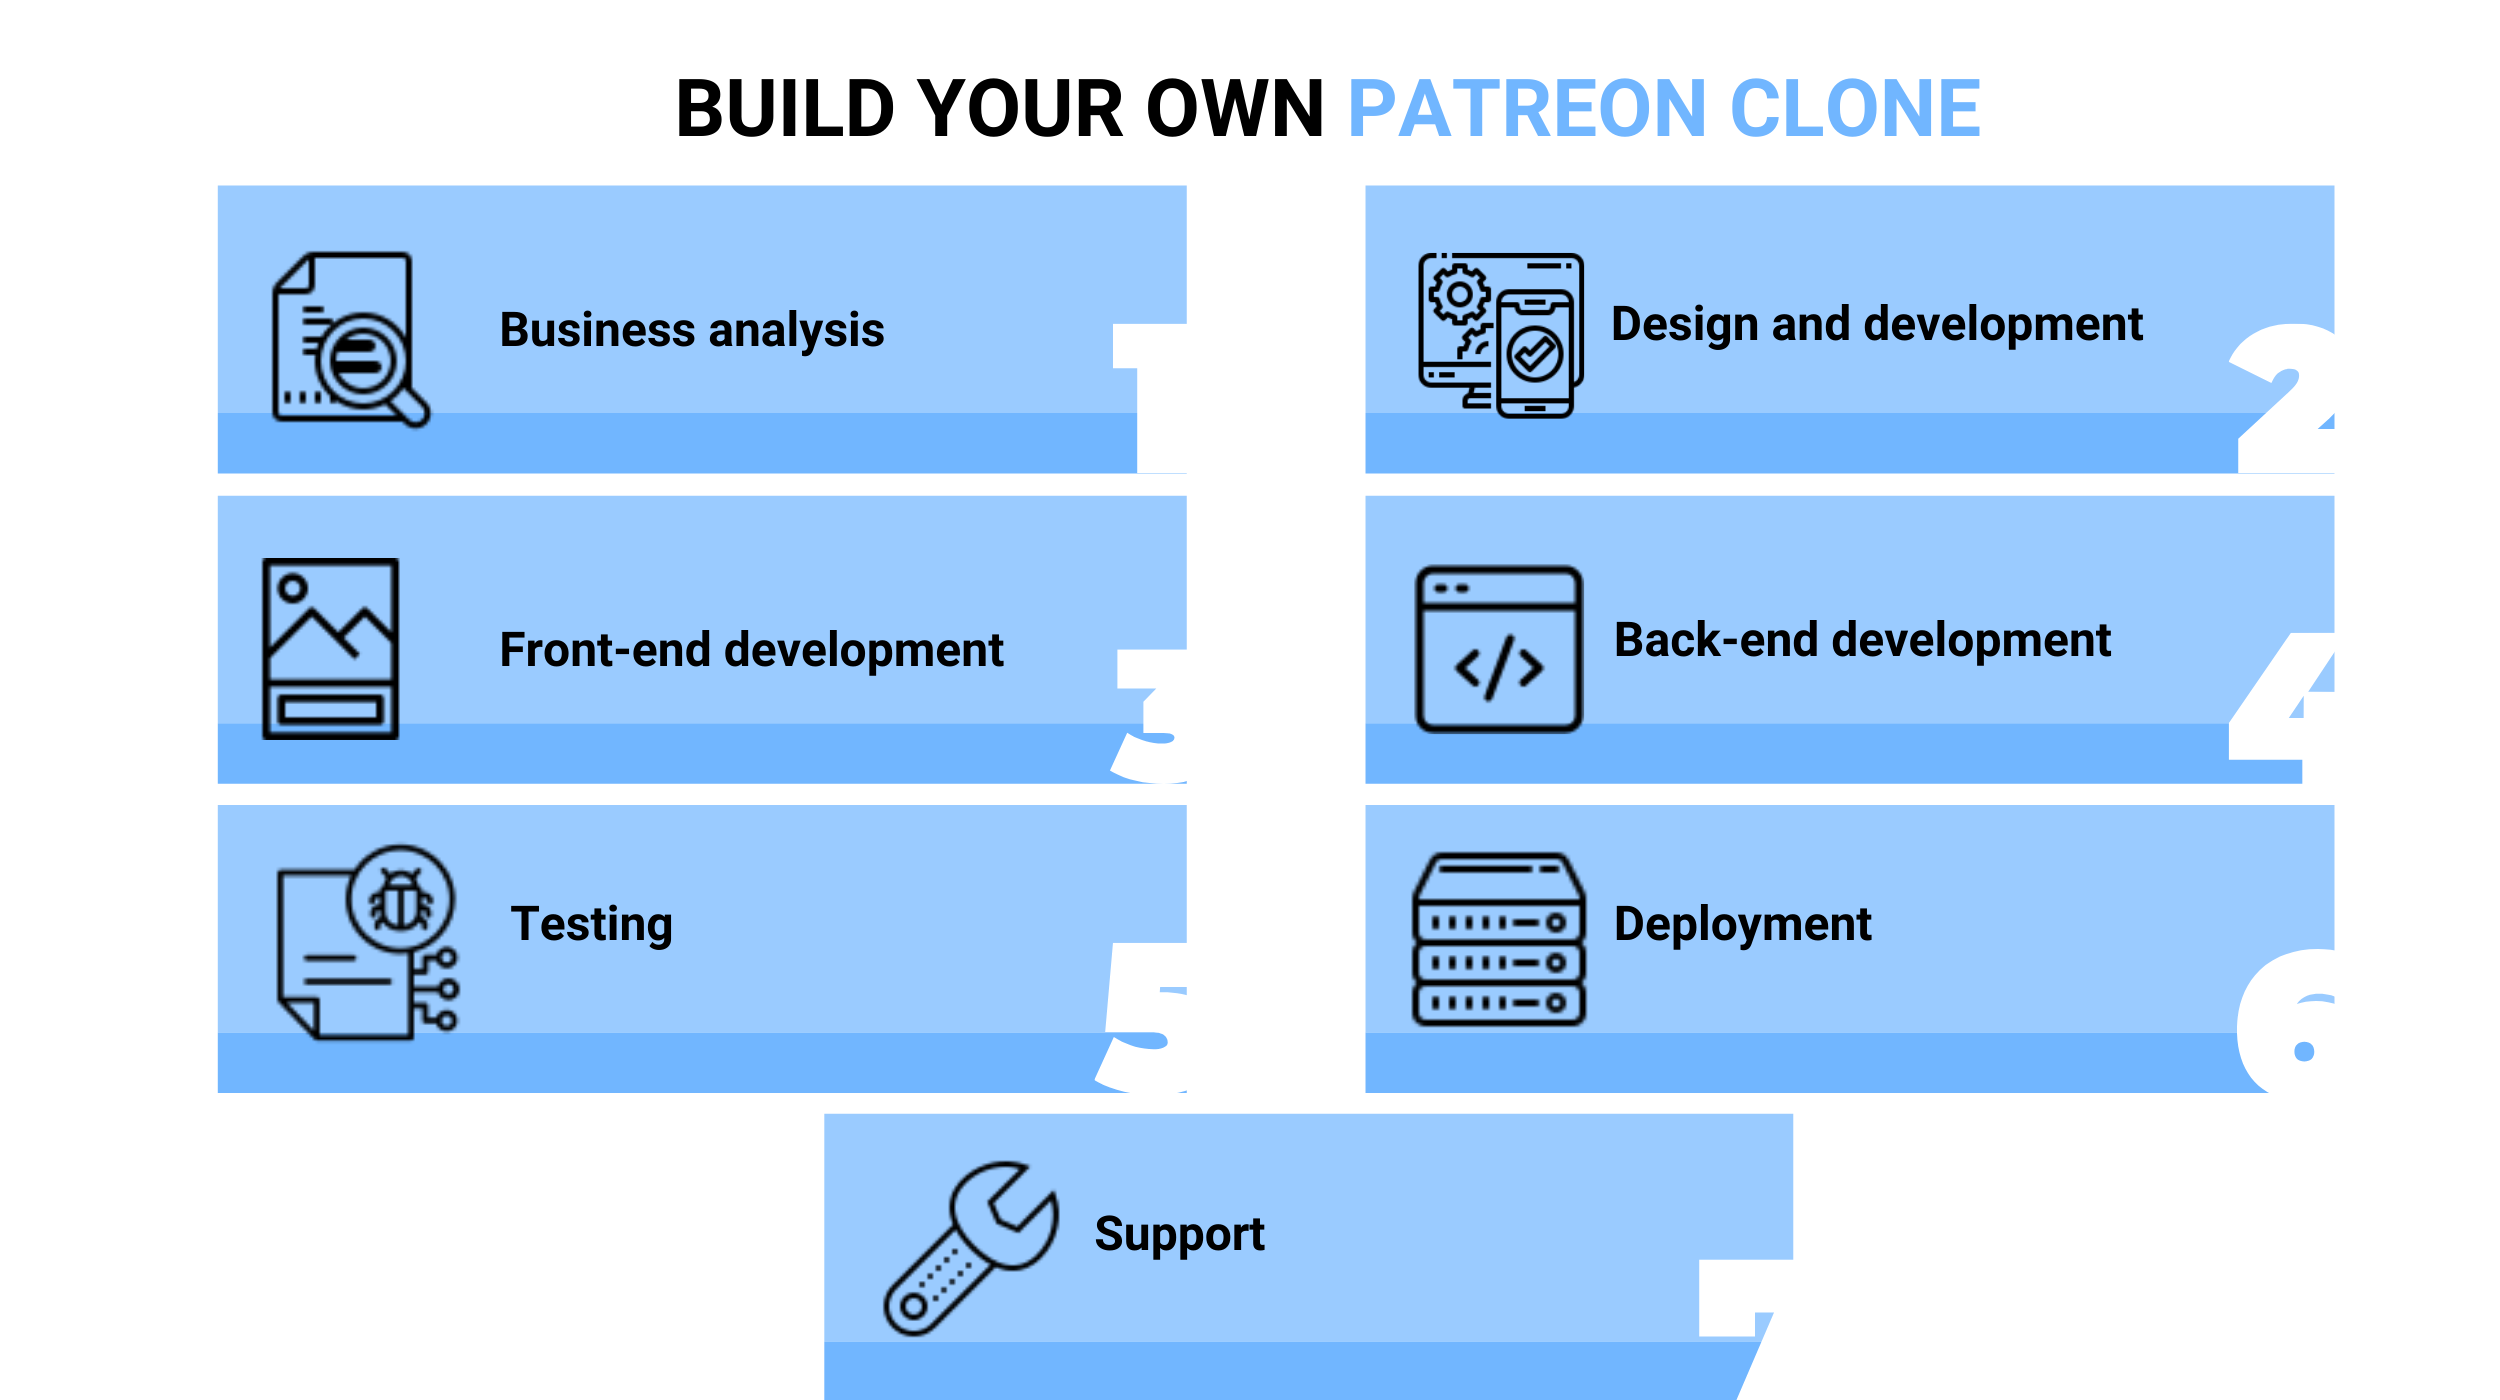 Build Your Own Patreon Clone